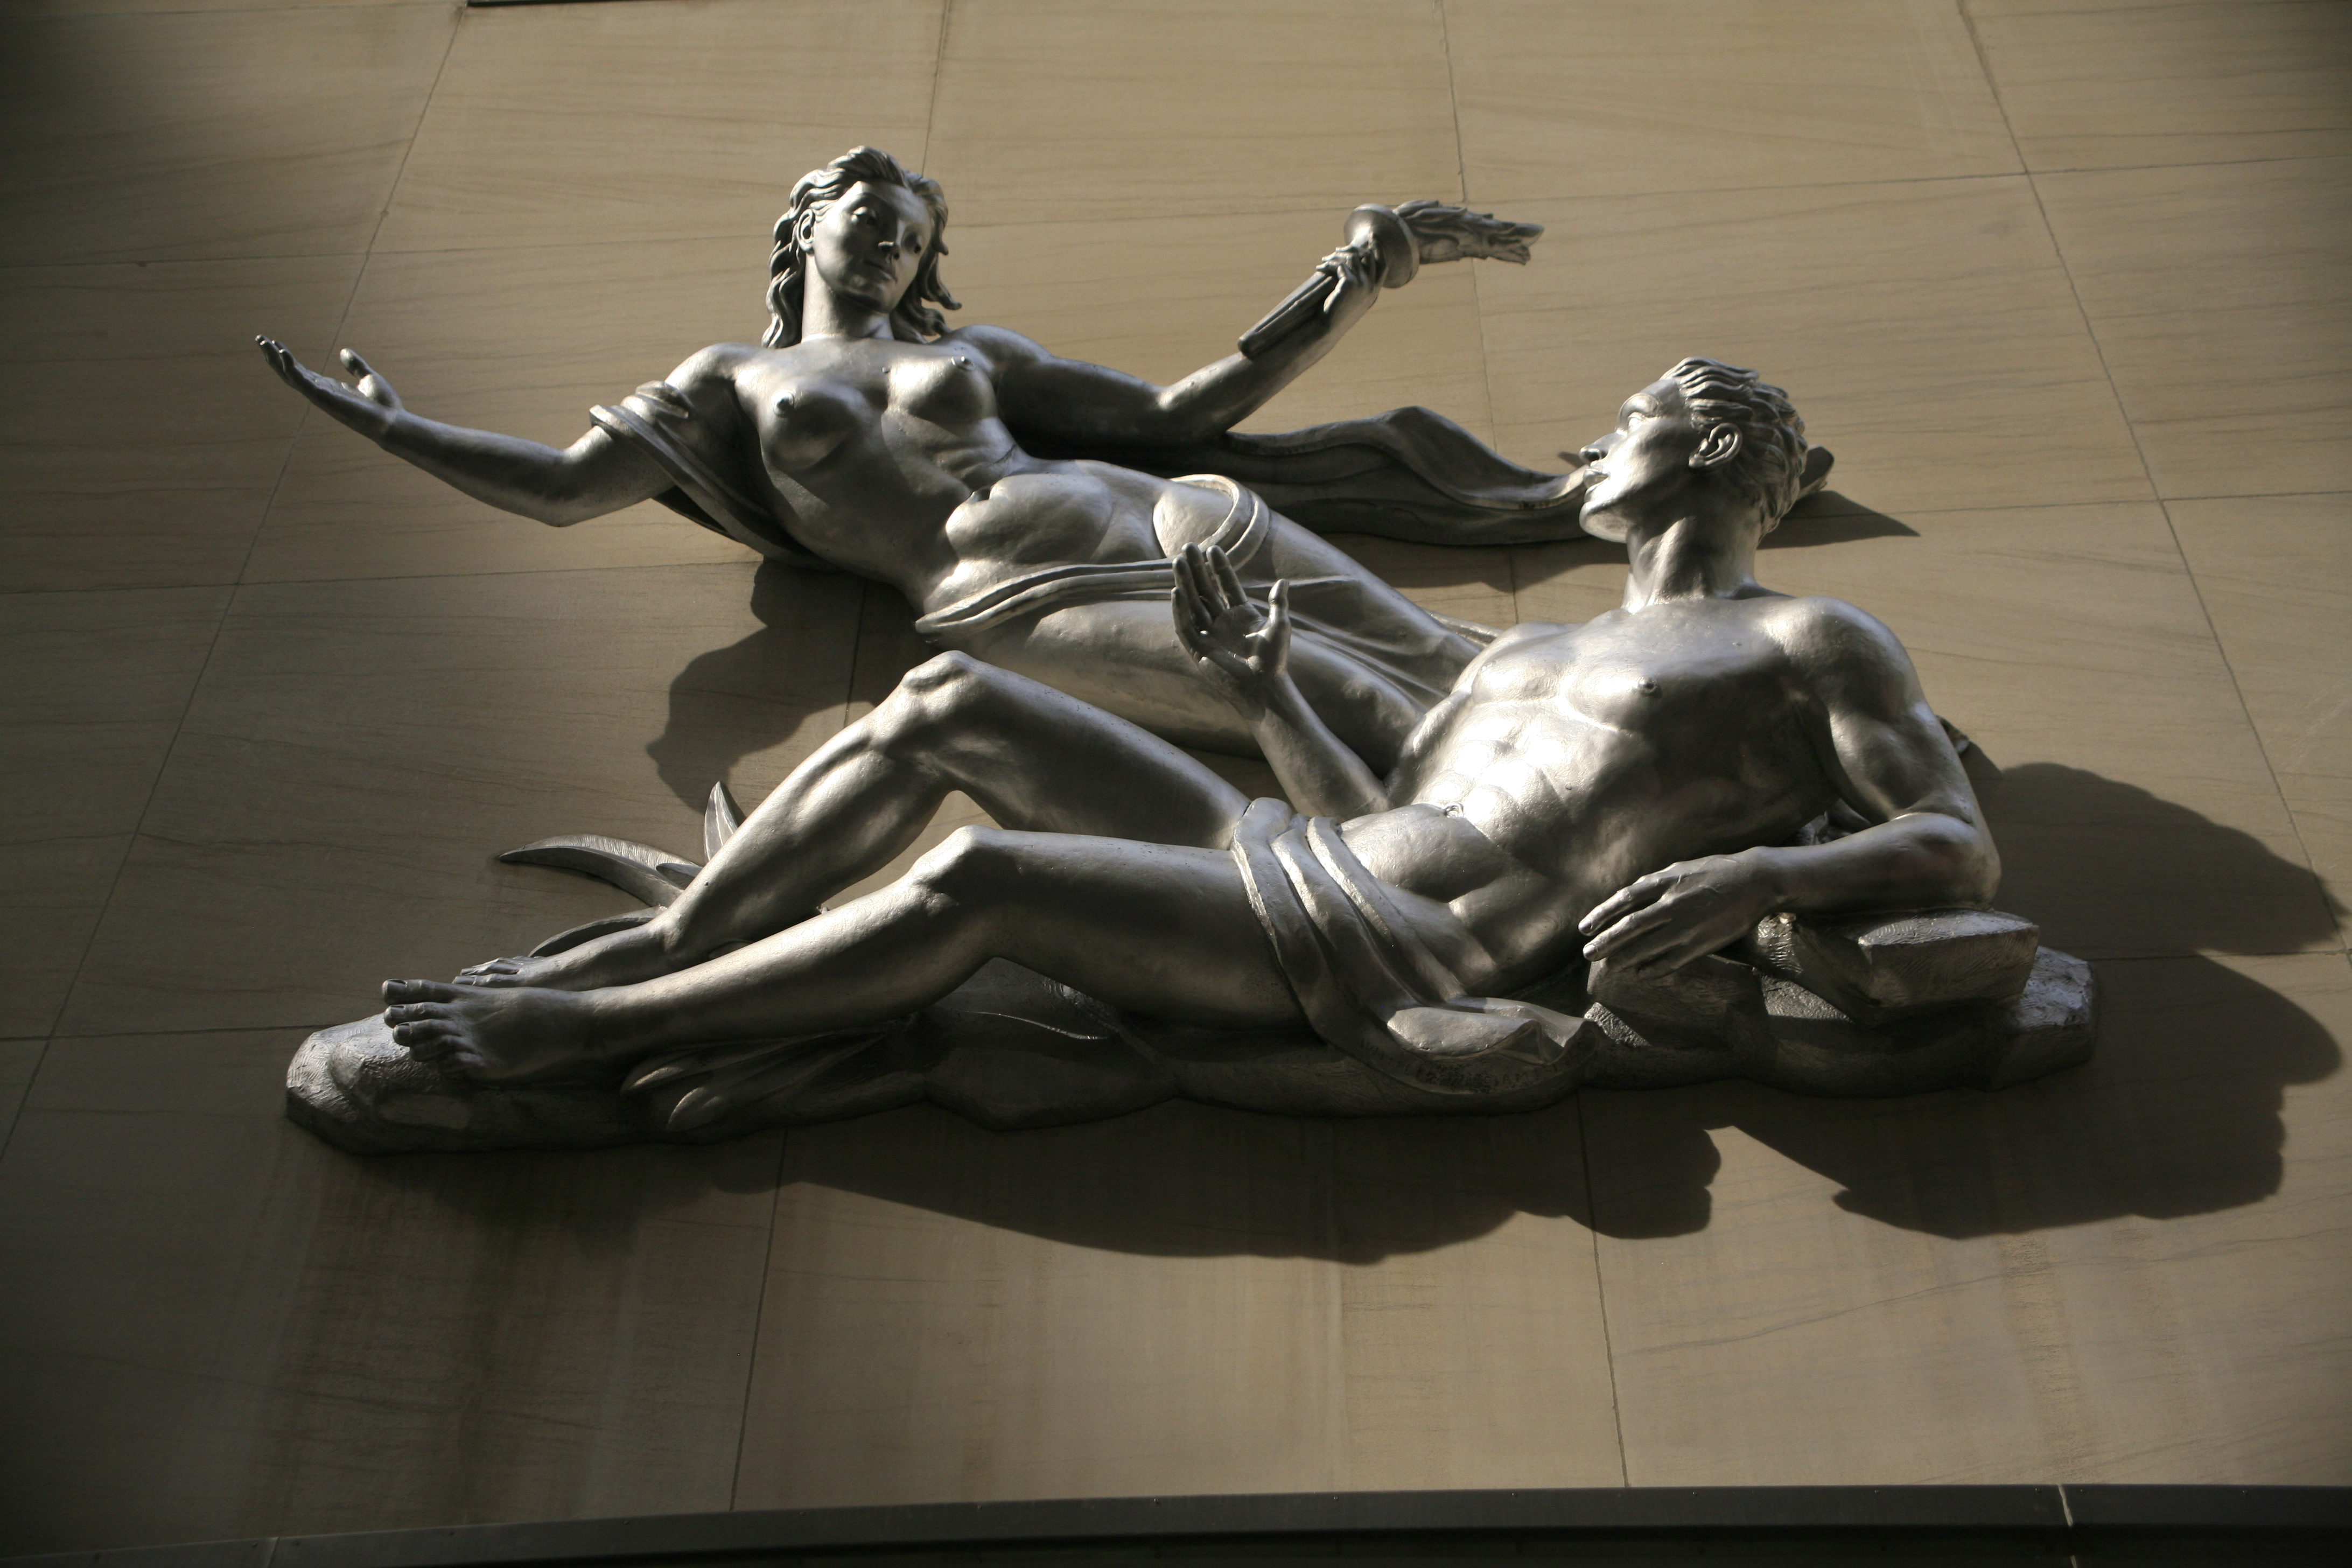 A photo of statues at Rockefeller Center in New York City